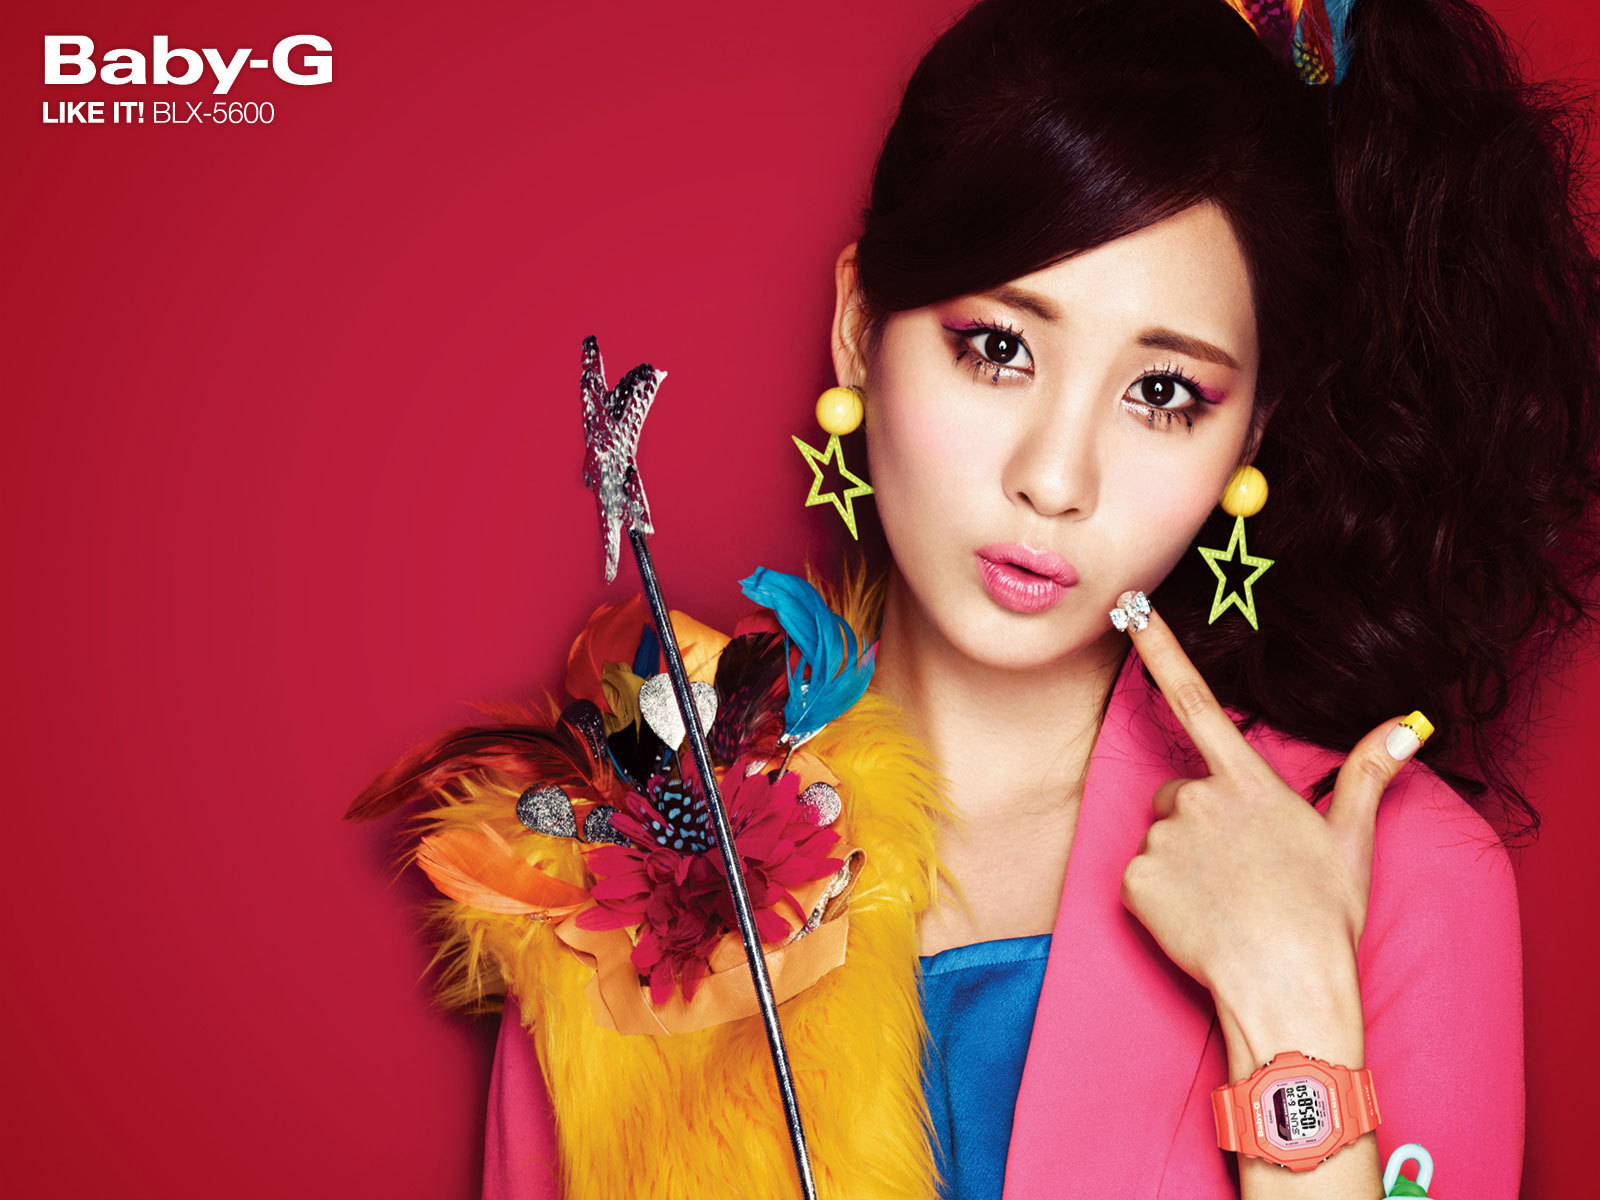 7e314c4a02 Part 1: My Individual Rankings for All Baby-G Photoshoots (so far ...